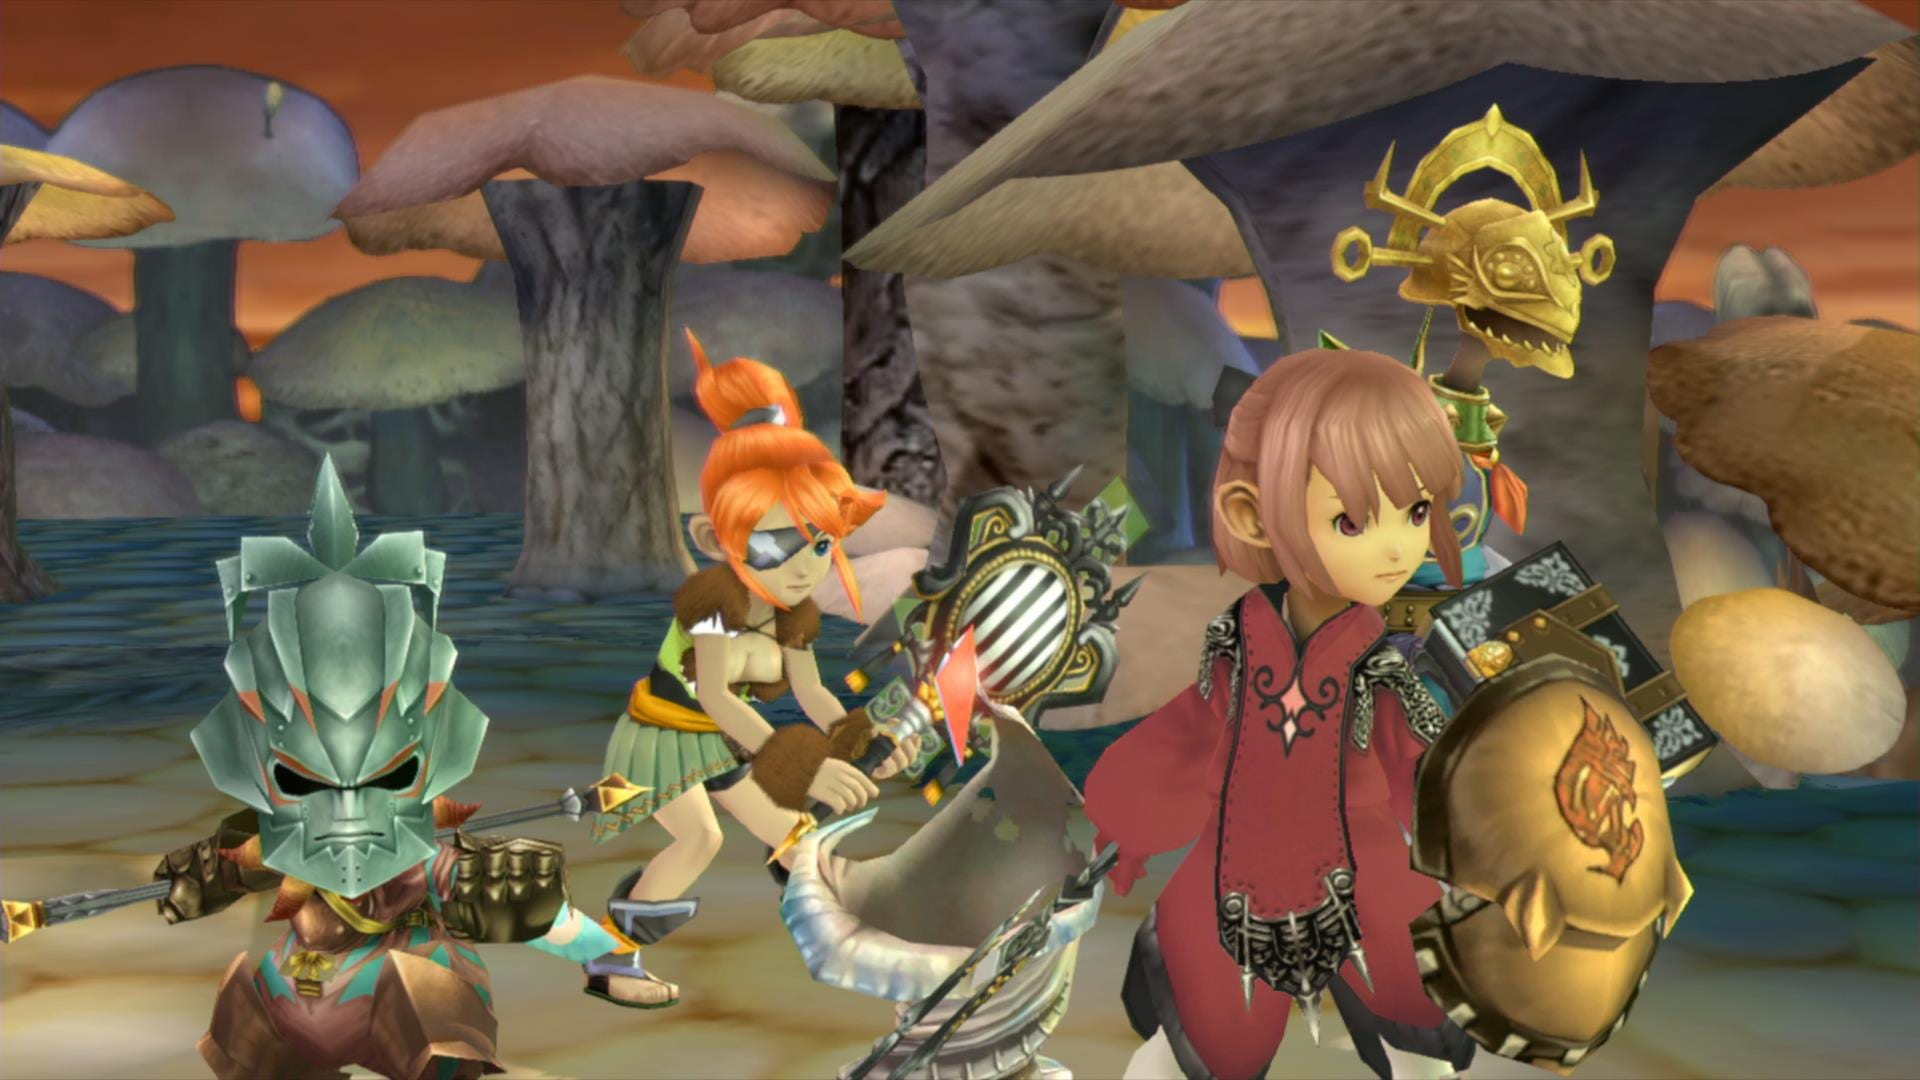 final fantasy crystal chronicles, online multiplayer